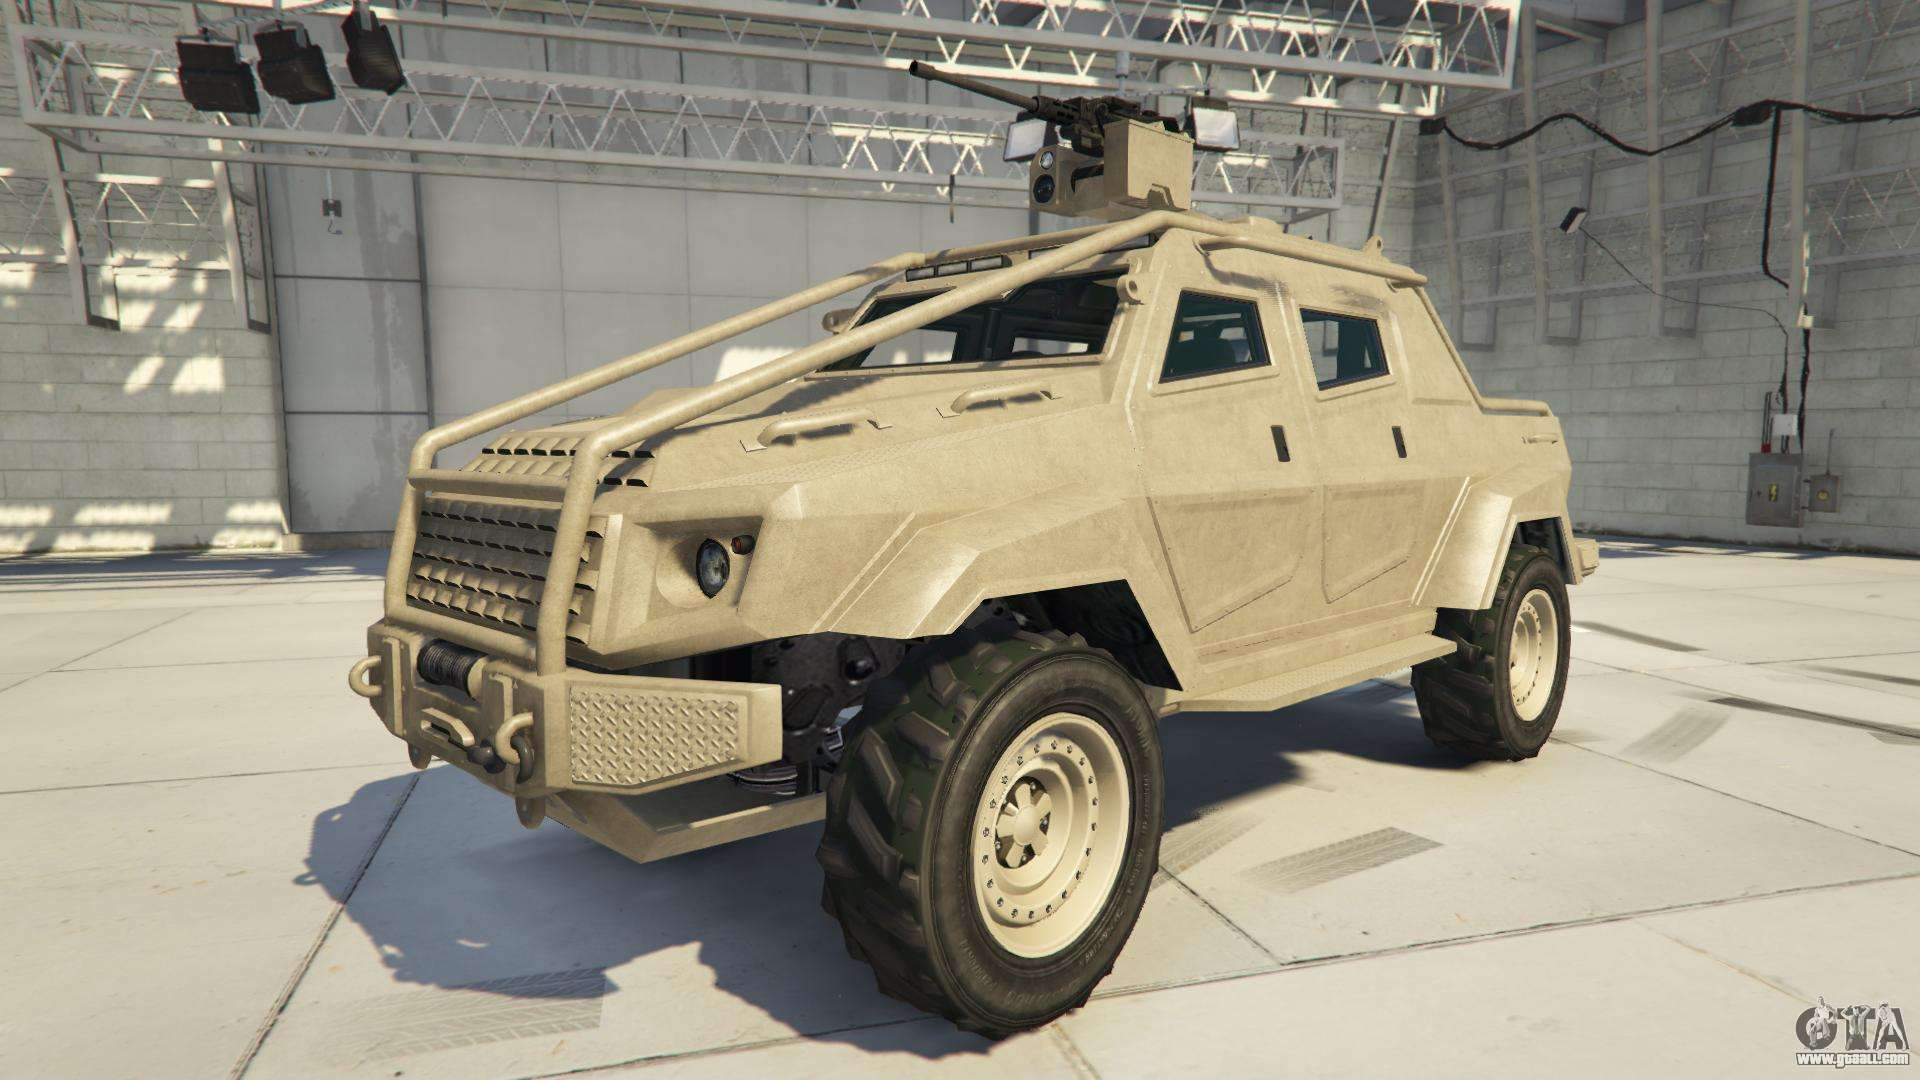 HVY Insurgent Pick-Up Custom from GTA 5